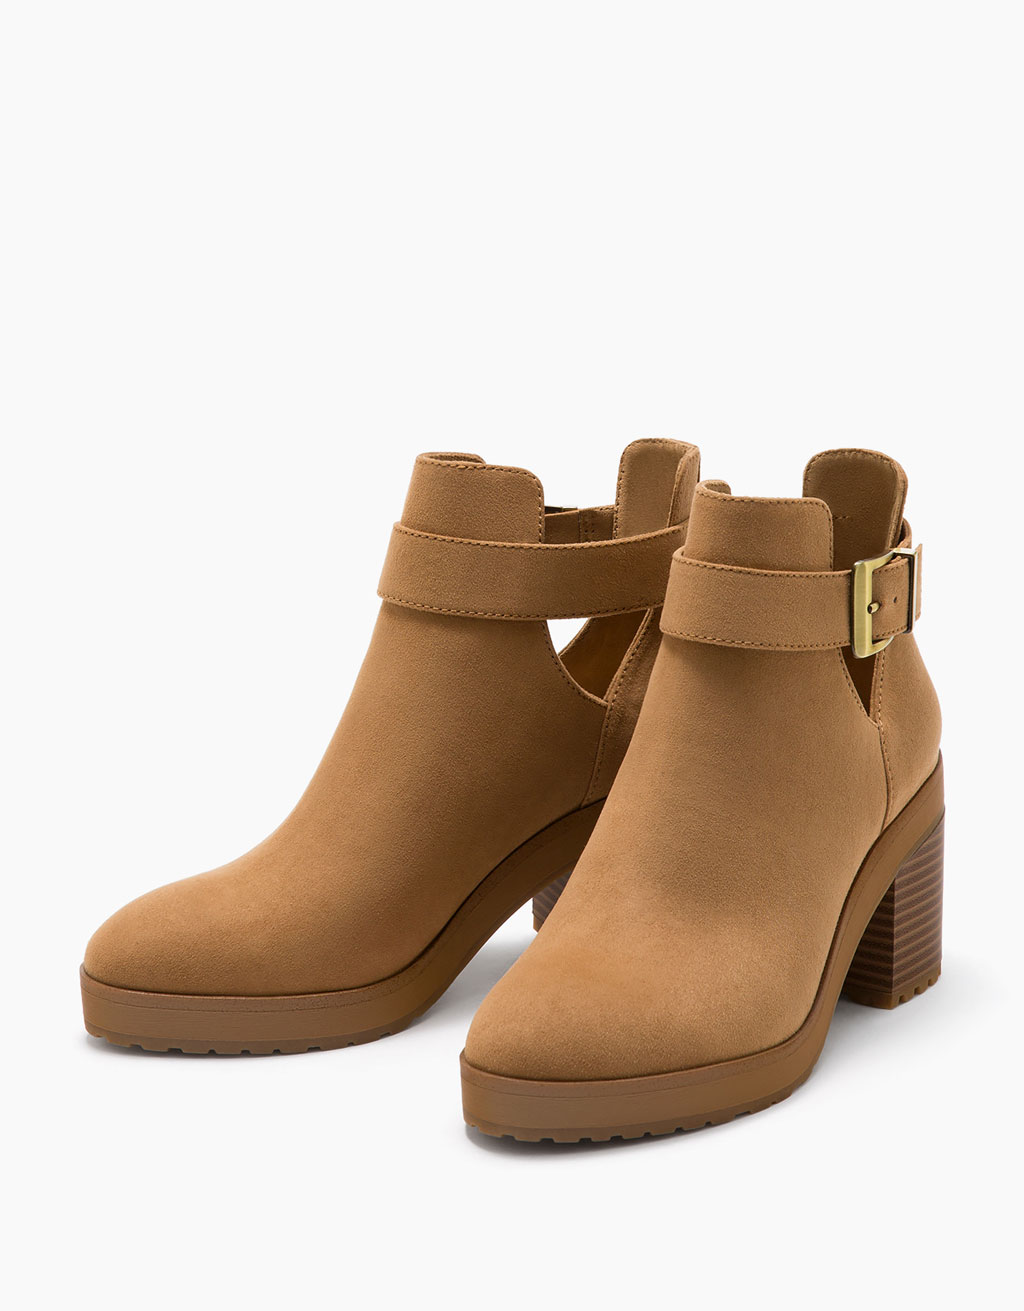 Mid heel ankle boots with openings and buckle